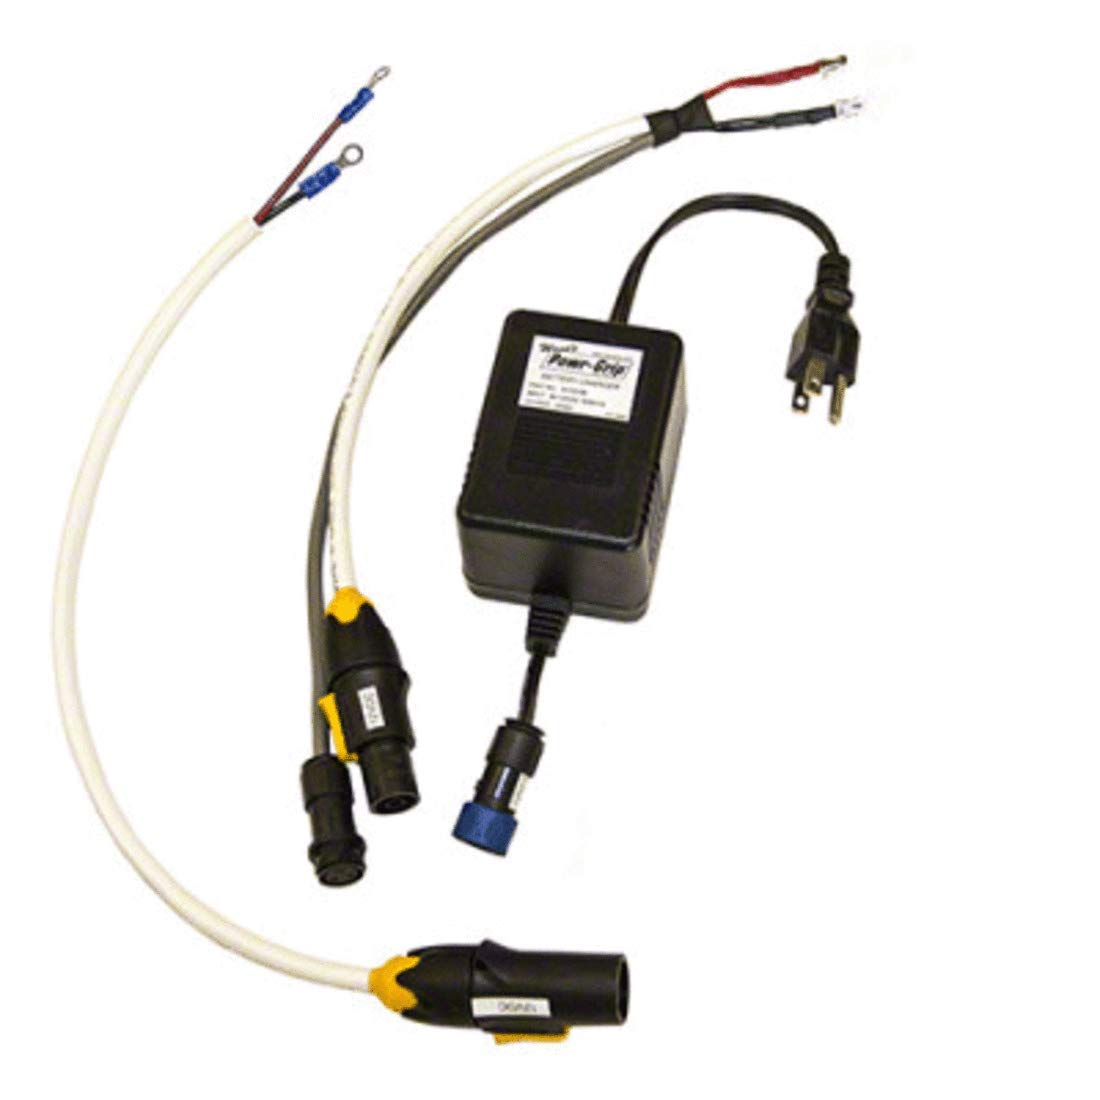 CRL W93601 Wood's 110 Volt Charger and Plug Connection Kit